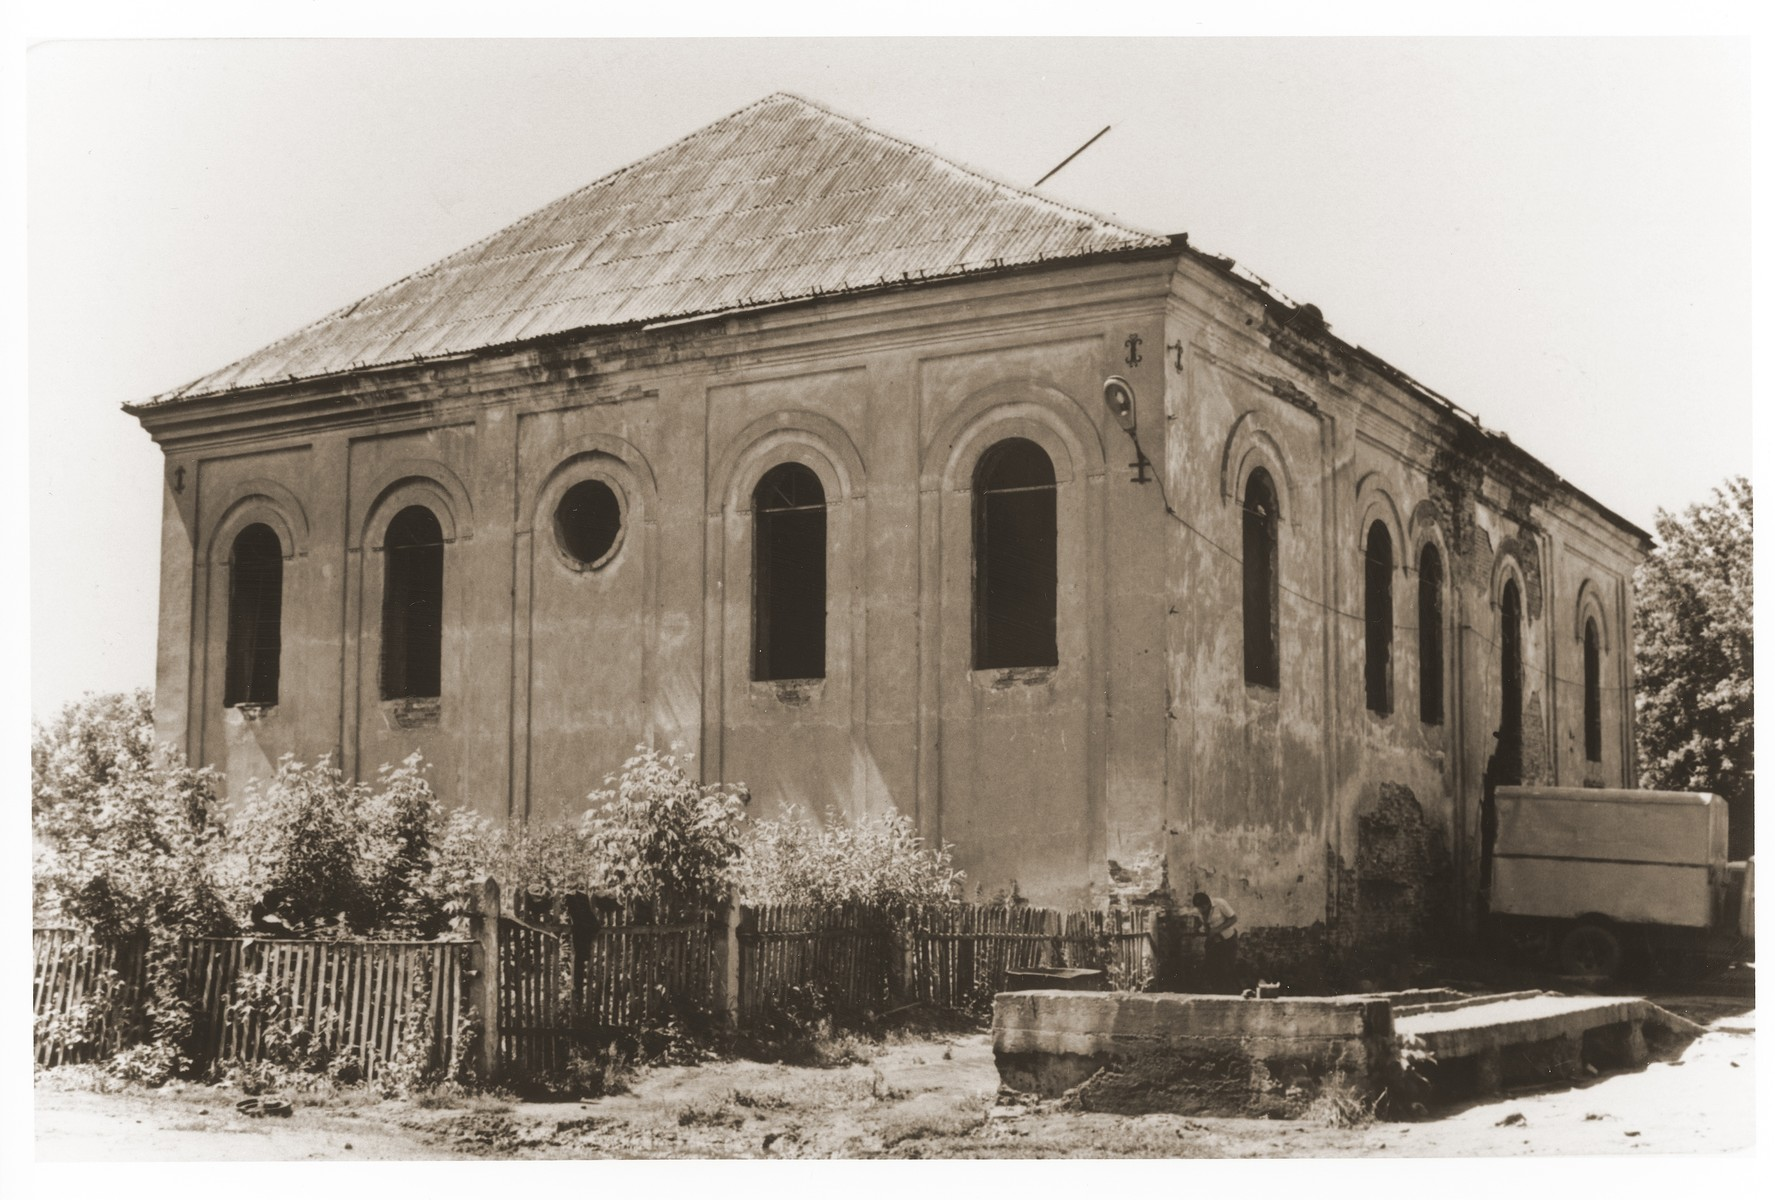 Exterior of the synagogue in Rozana, Belorussia.